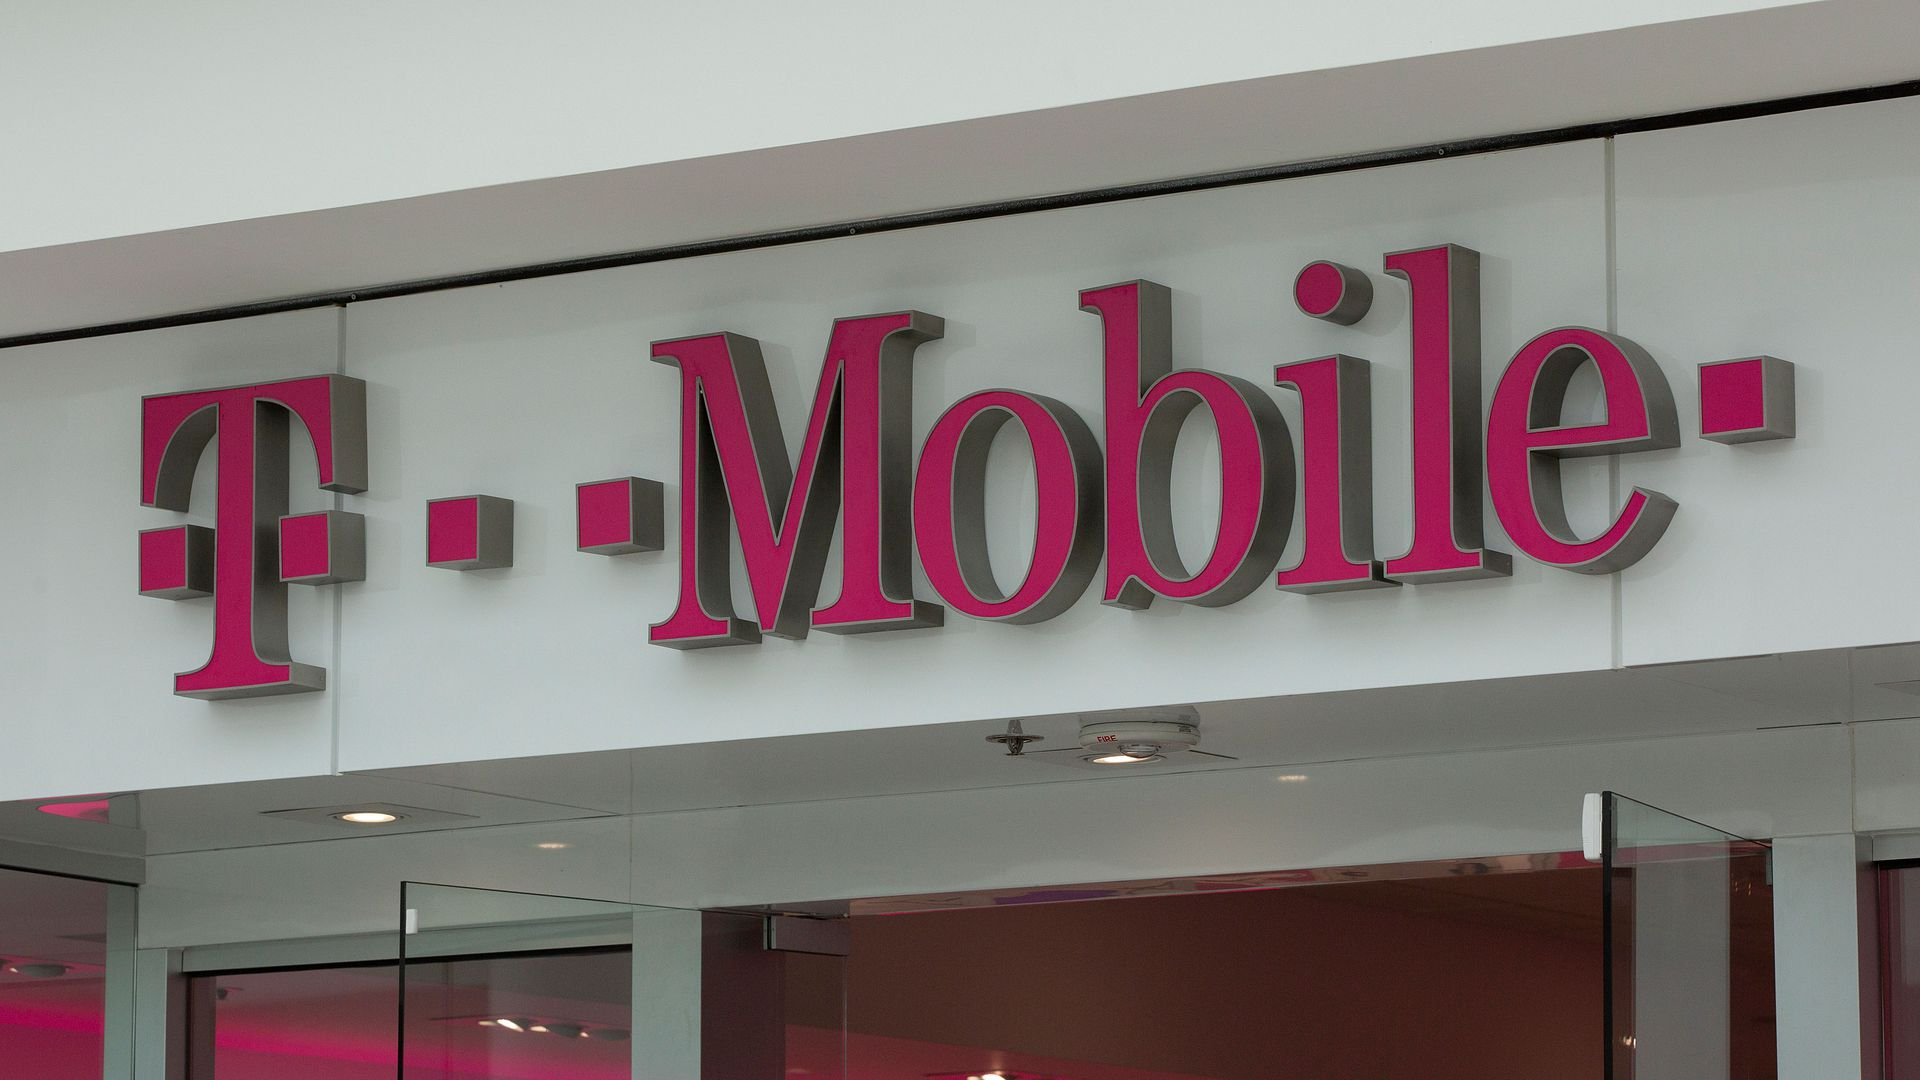 The front entrance of a T-Mobile store.